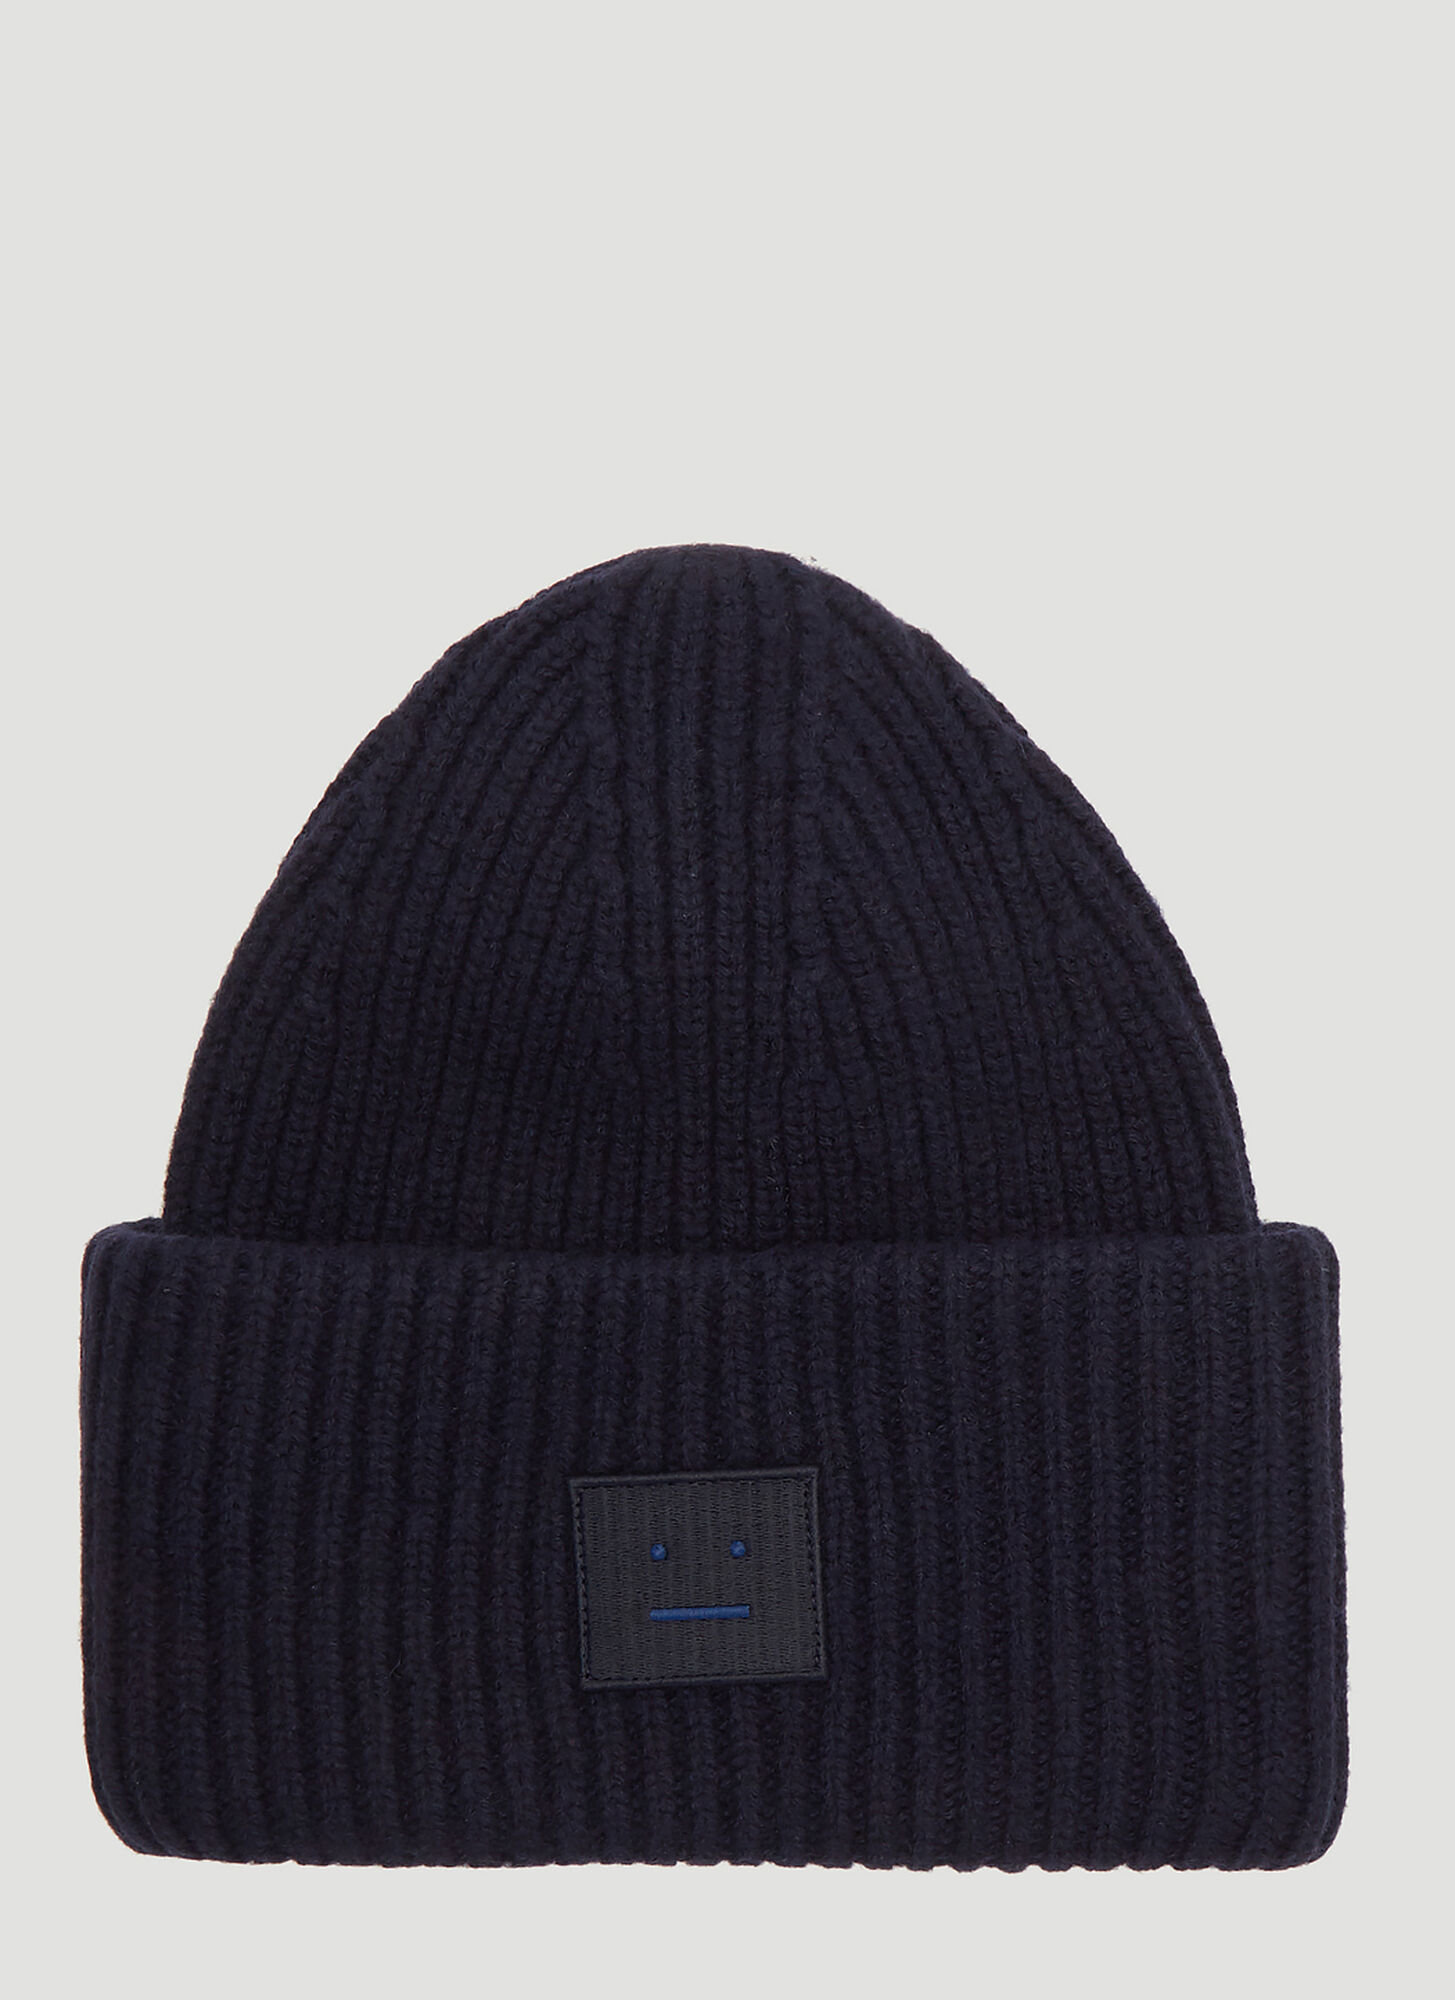 Acne Studios Pansy L Face Knit Hat in Navy